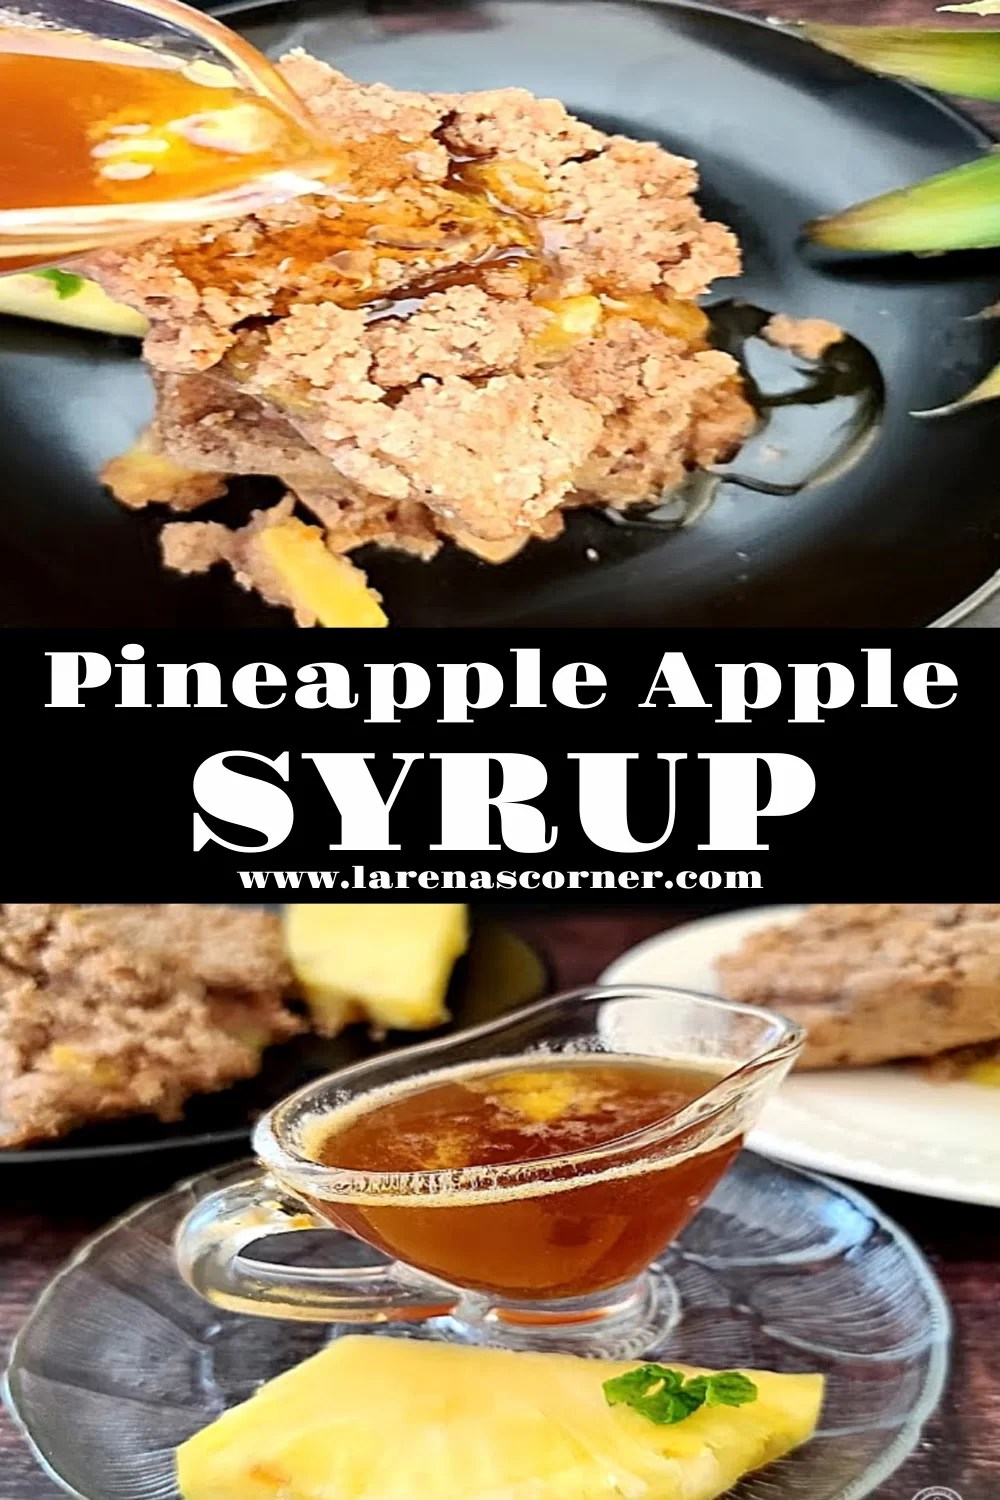 Two pictures of Pineapple Apple Syrup